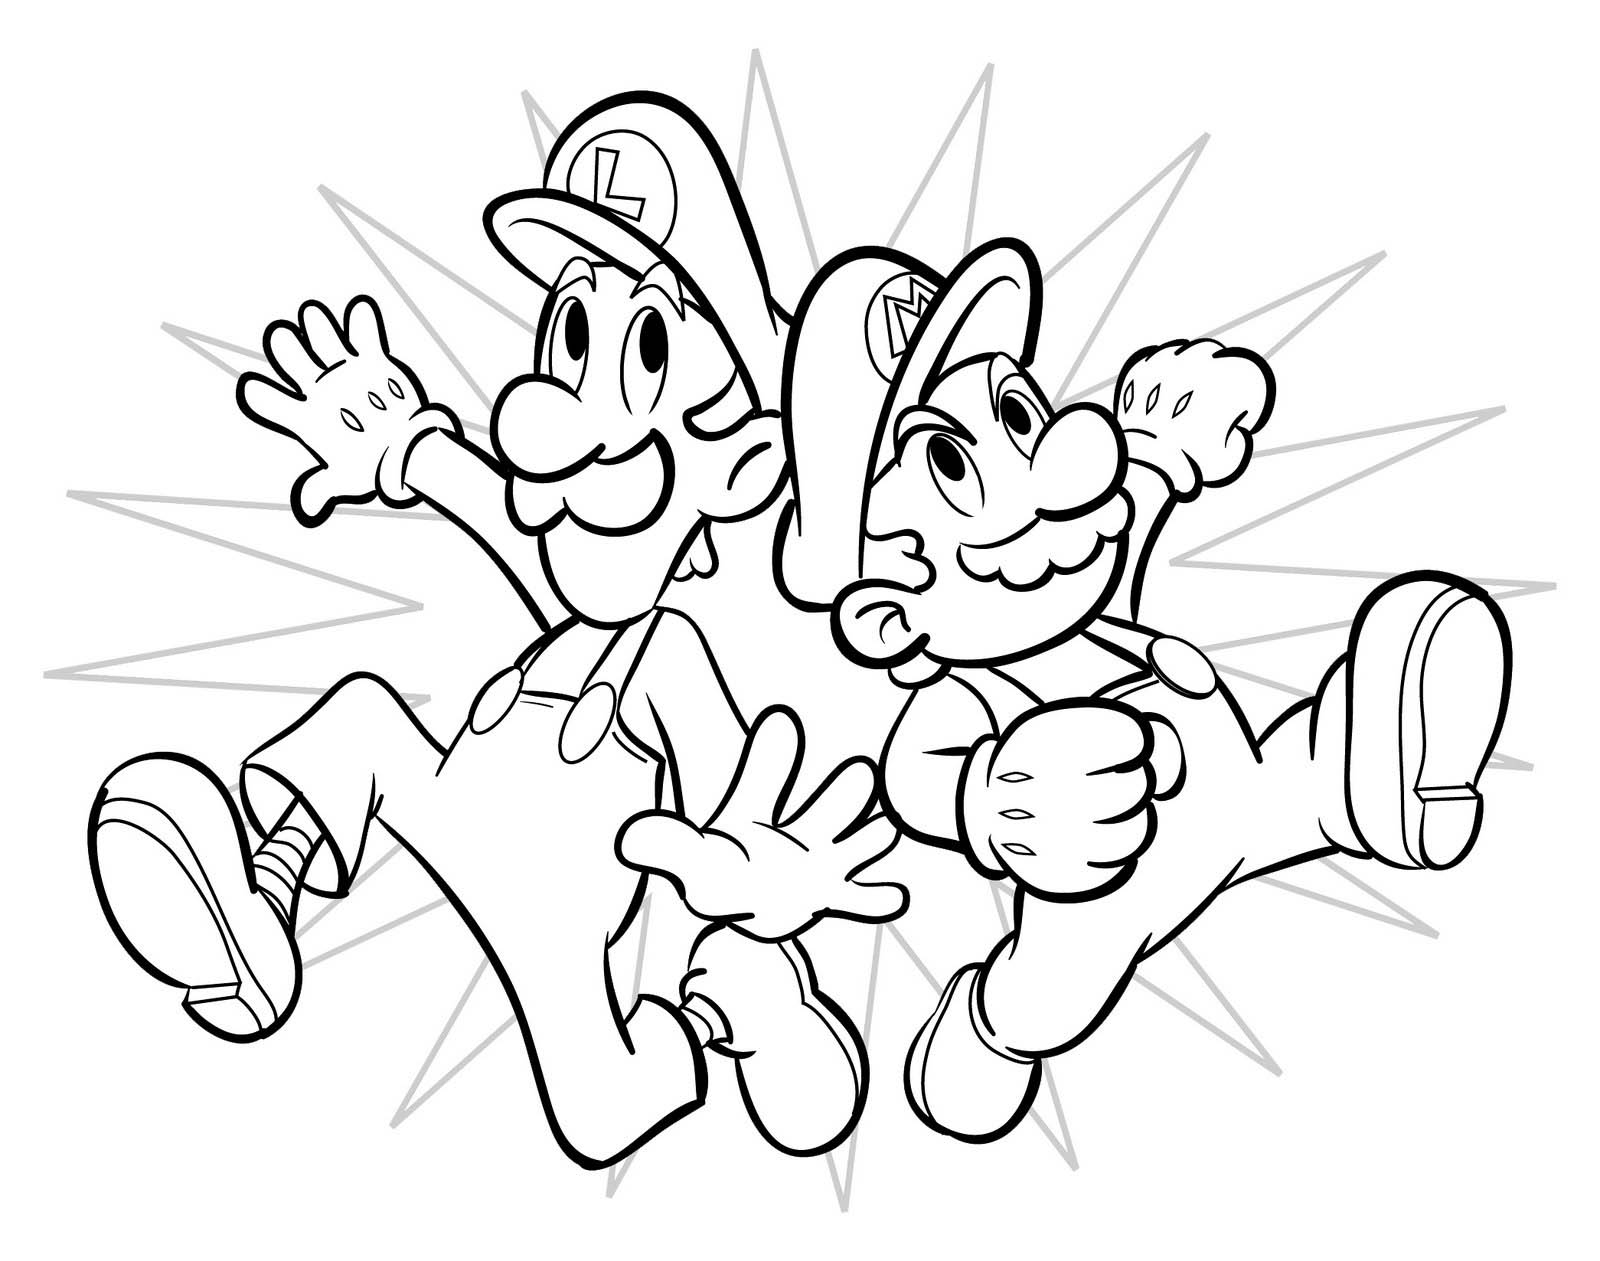 Luigi and Mario Coloring Pages